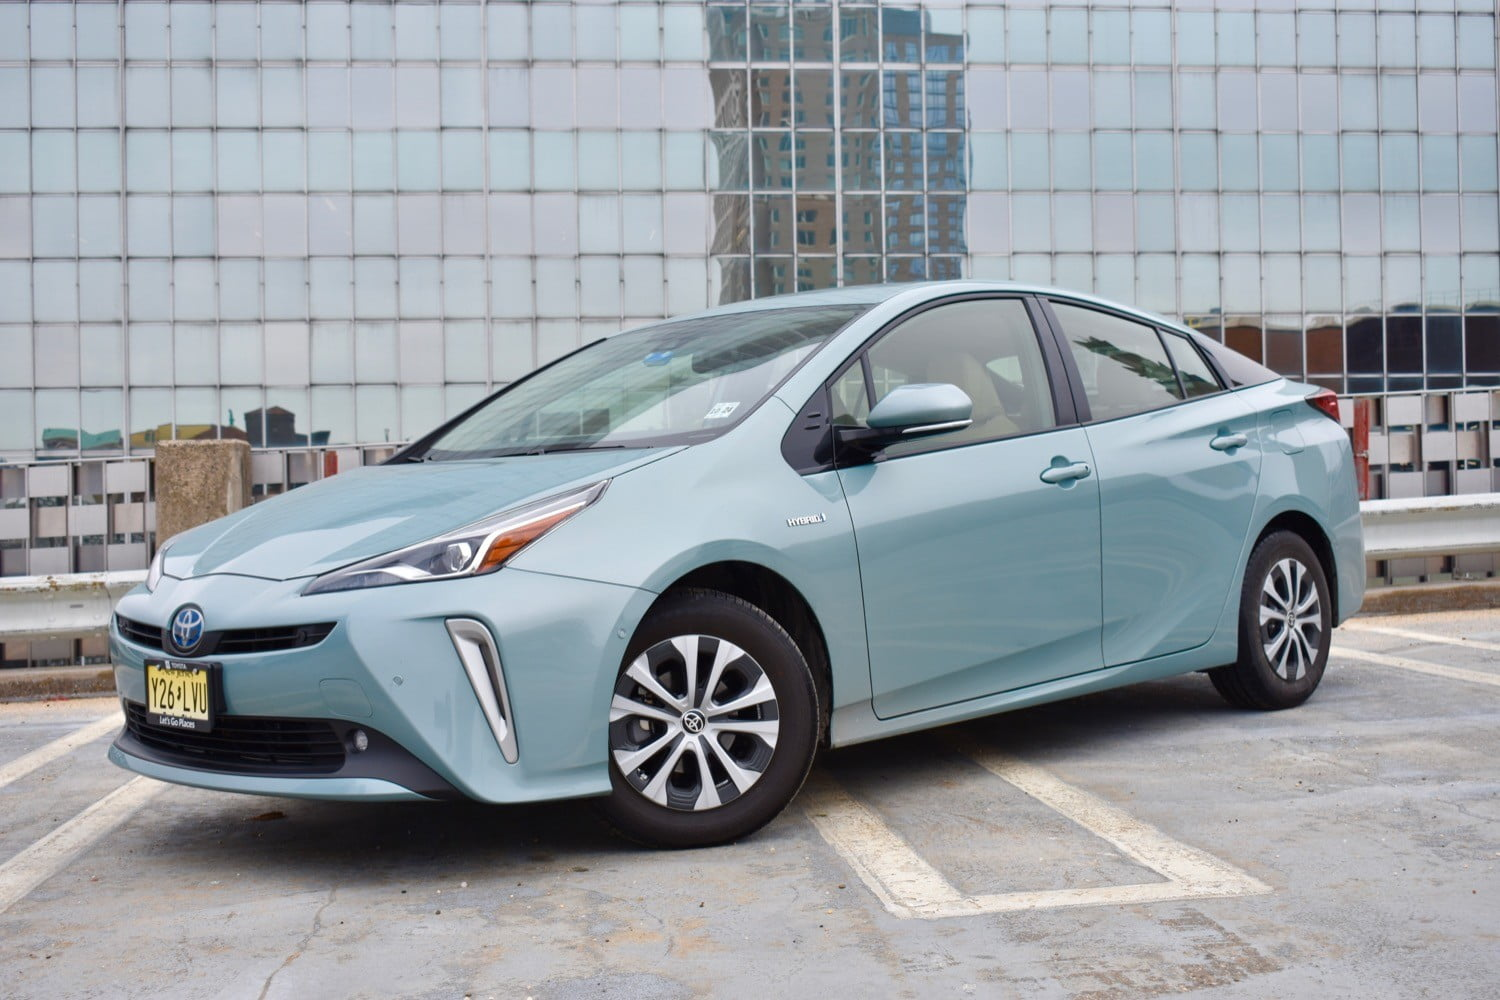 2020 Toyota Prius XLE AWD-e review: This classic hybrid is a winter warrior